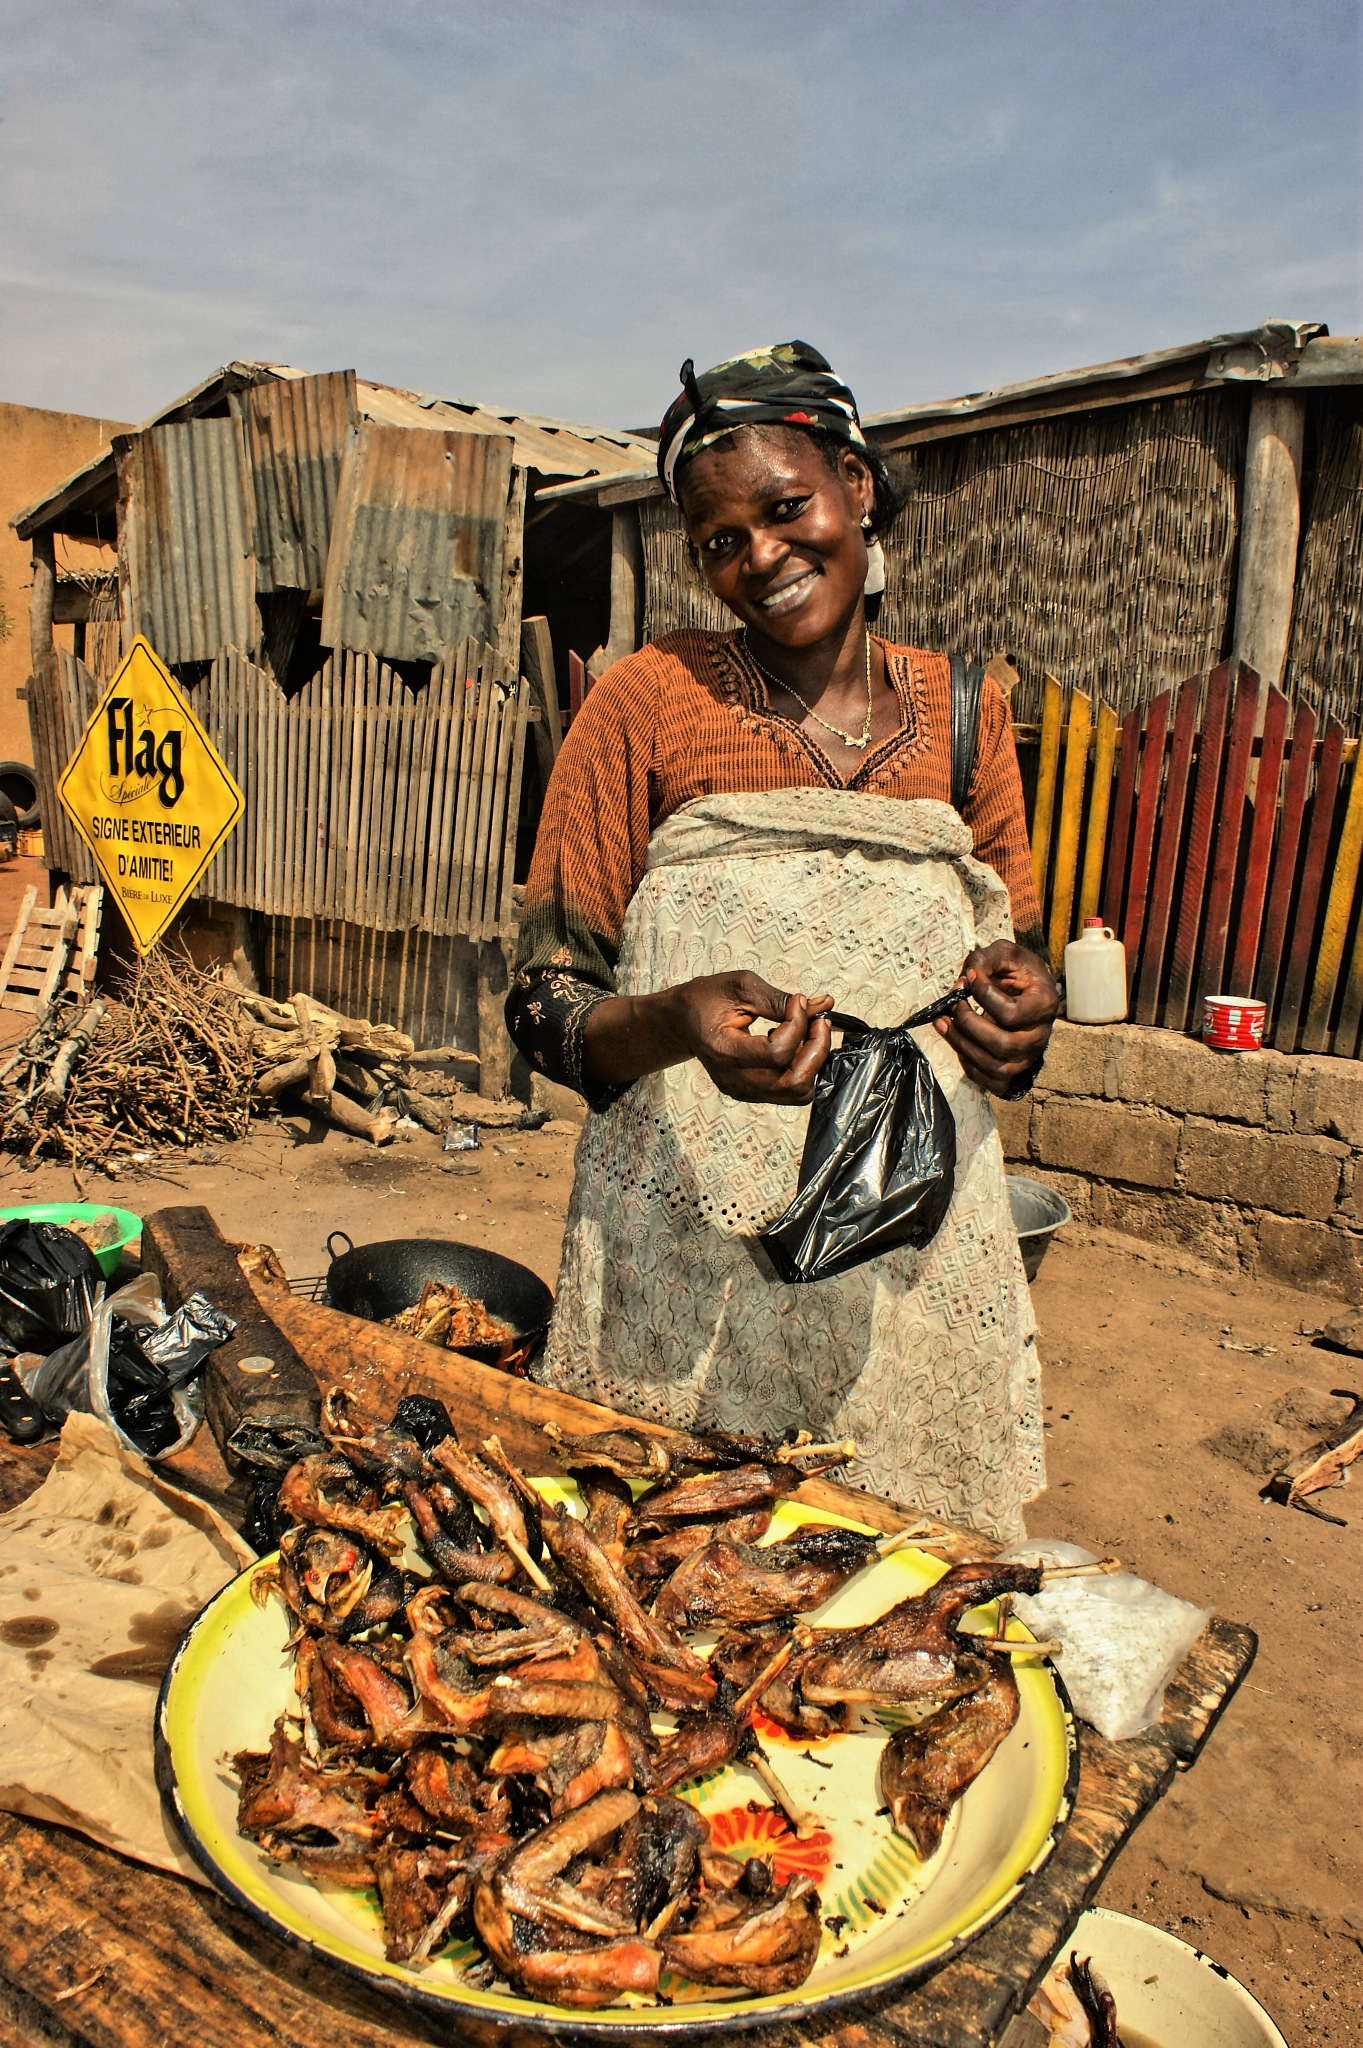 Burkina woman selling fresh local, roosted chicken by RemoKurka